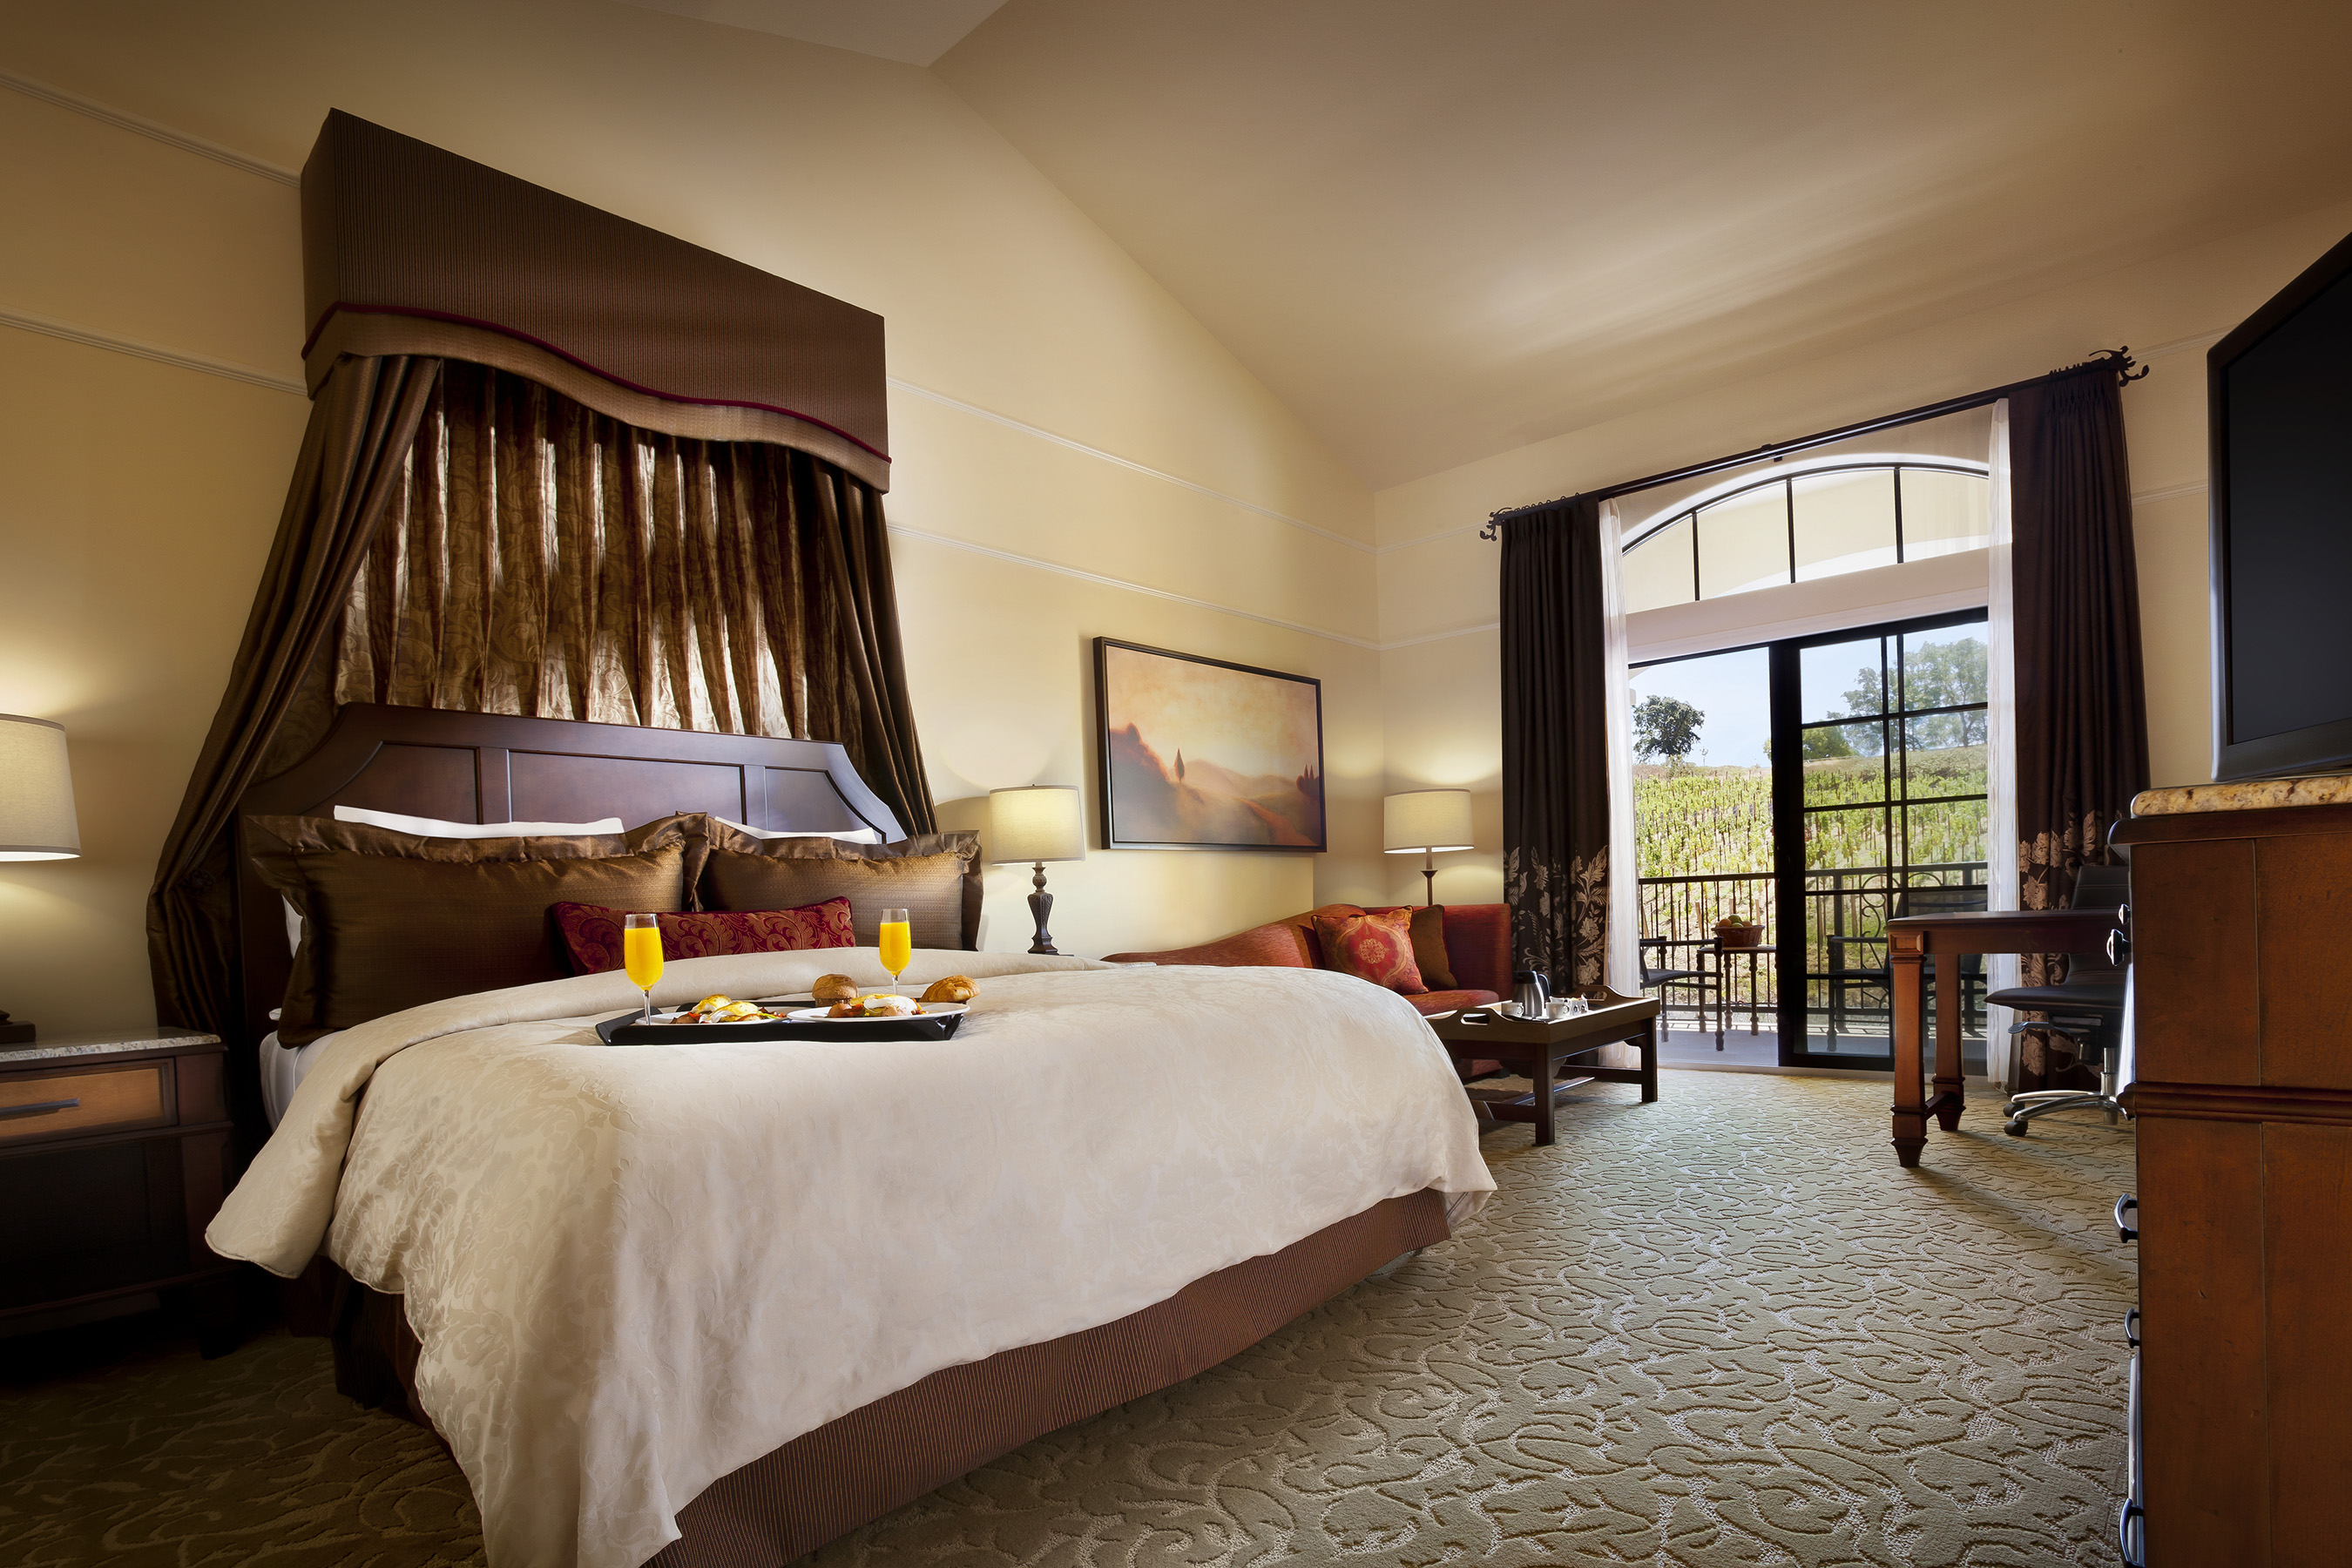 The Meritage Resort offers 322 guestrooms and suites, many with a private balcony or patio overlooking the beautiful Napa Valley.